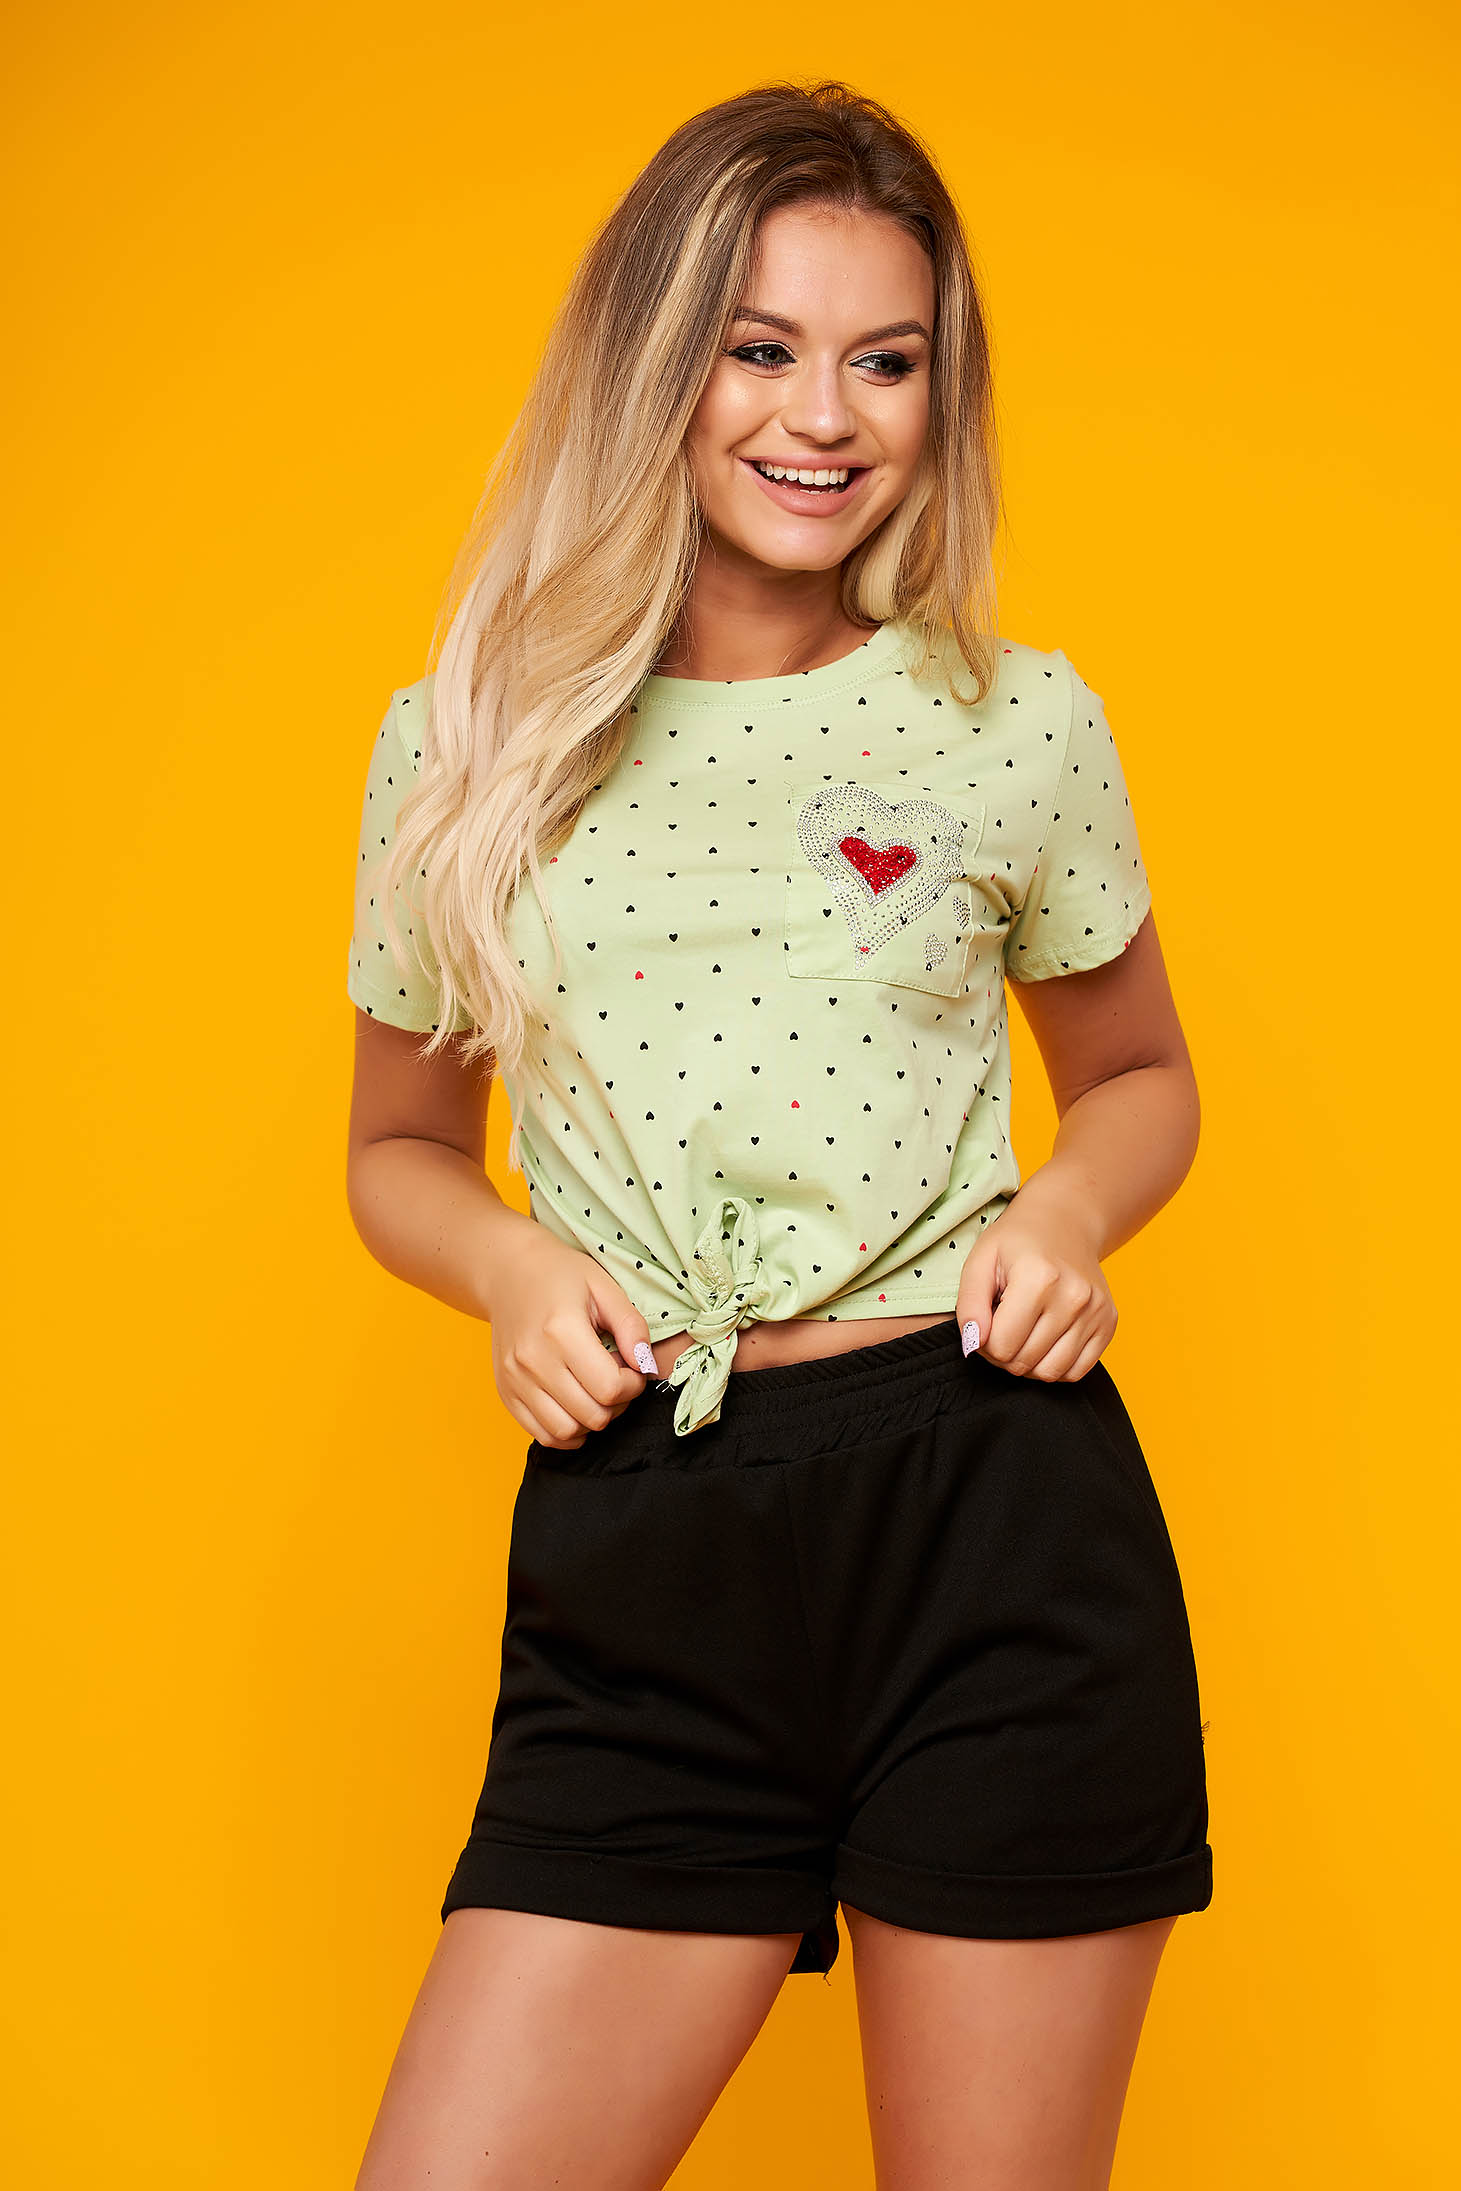 Green t-shirt casual short cut flared cotton short sleeves